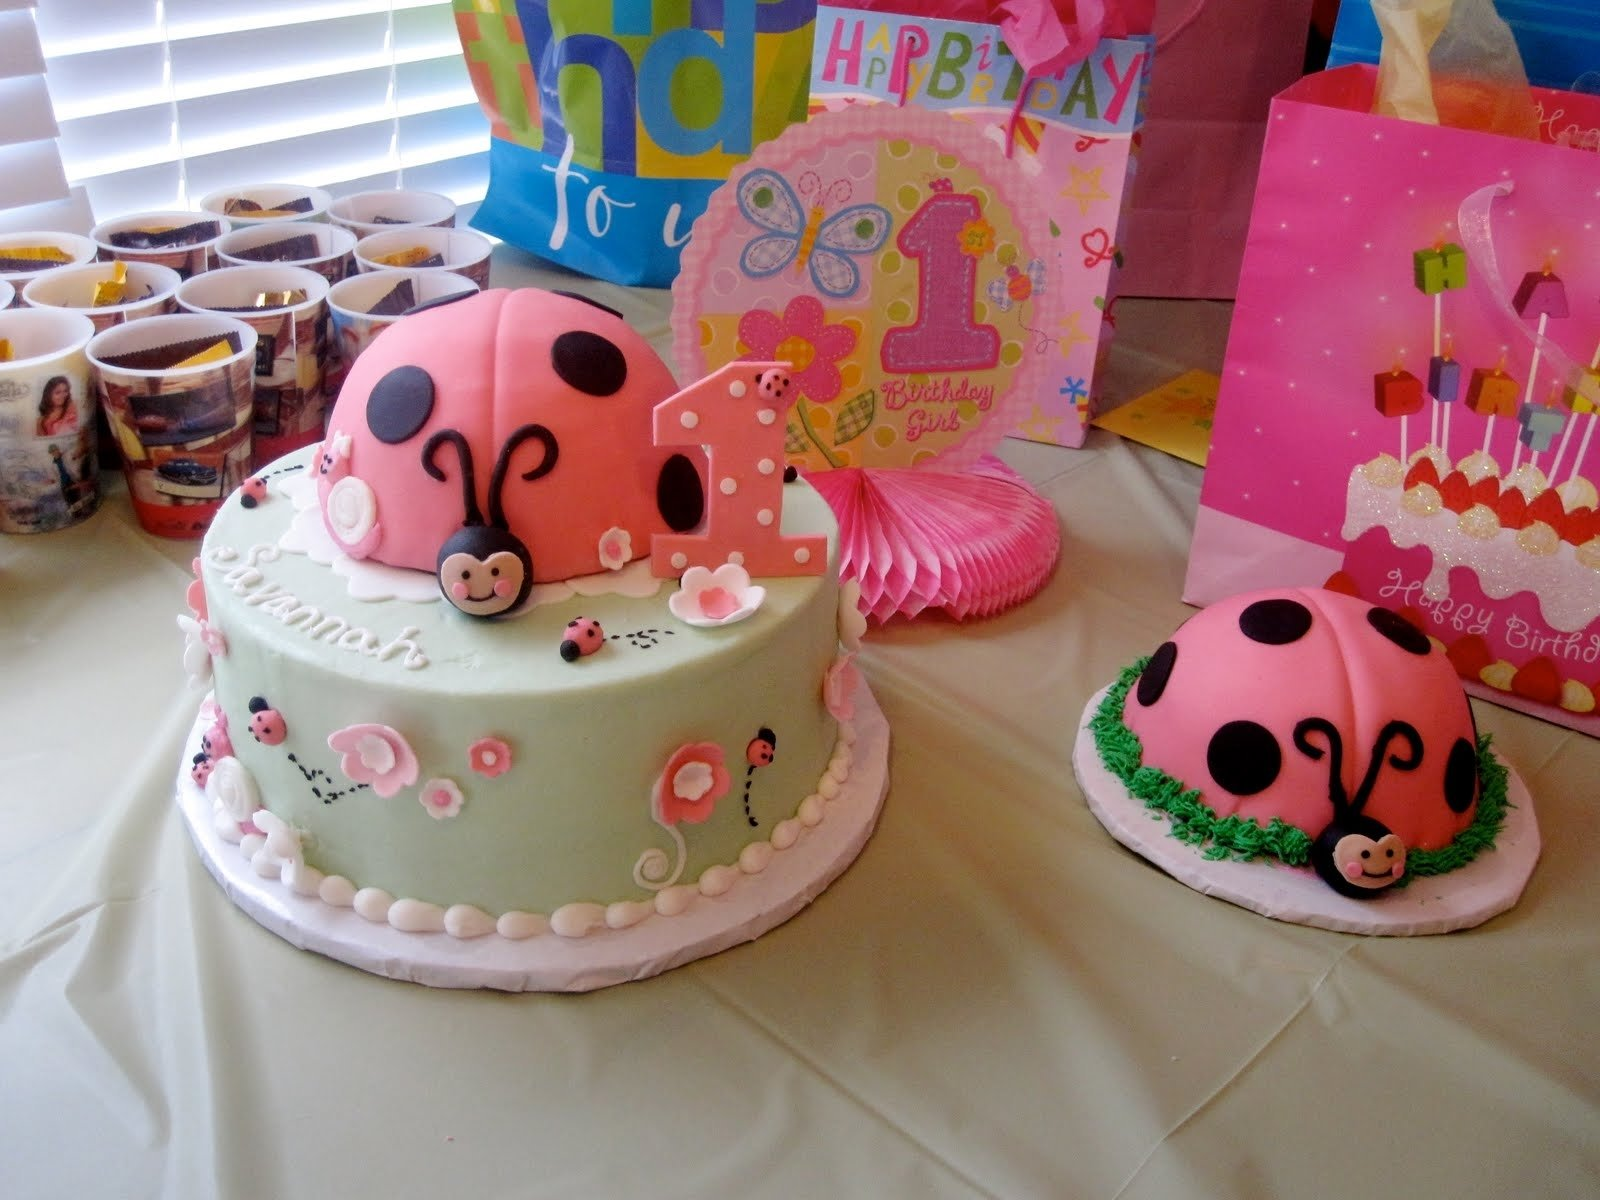 10 Ideal 1 Year Old Birthday Picture Ideas this would be so cute for paytons birthday holidays pinterest 4 2020